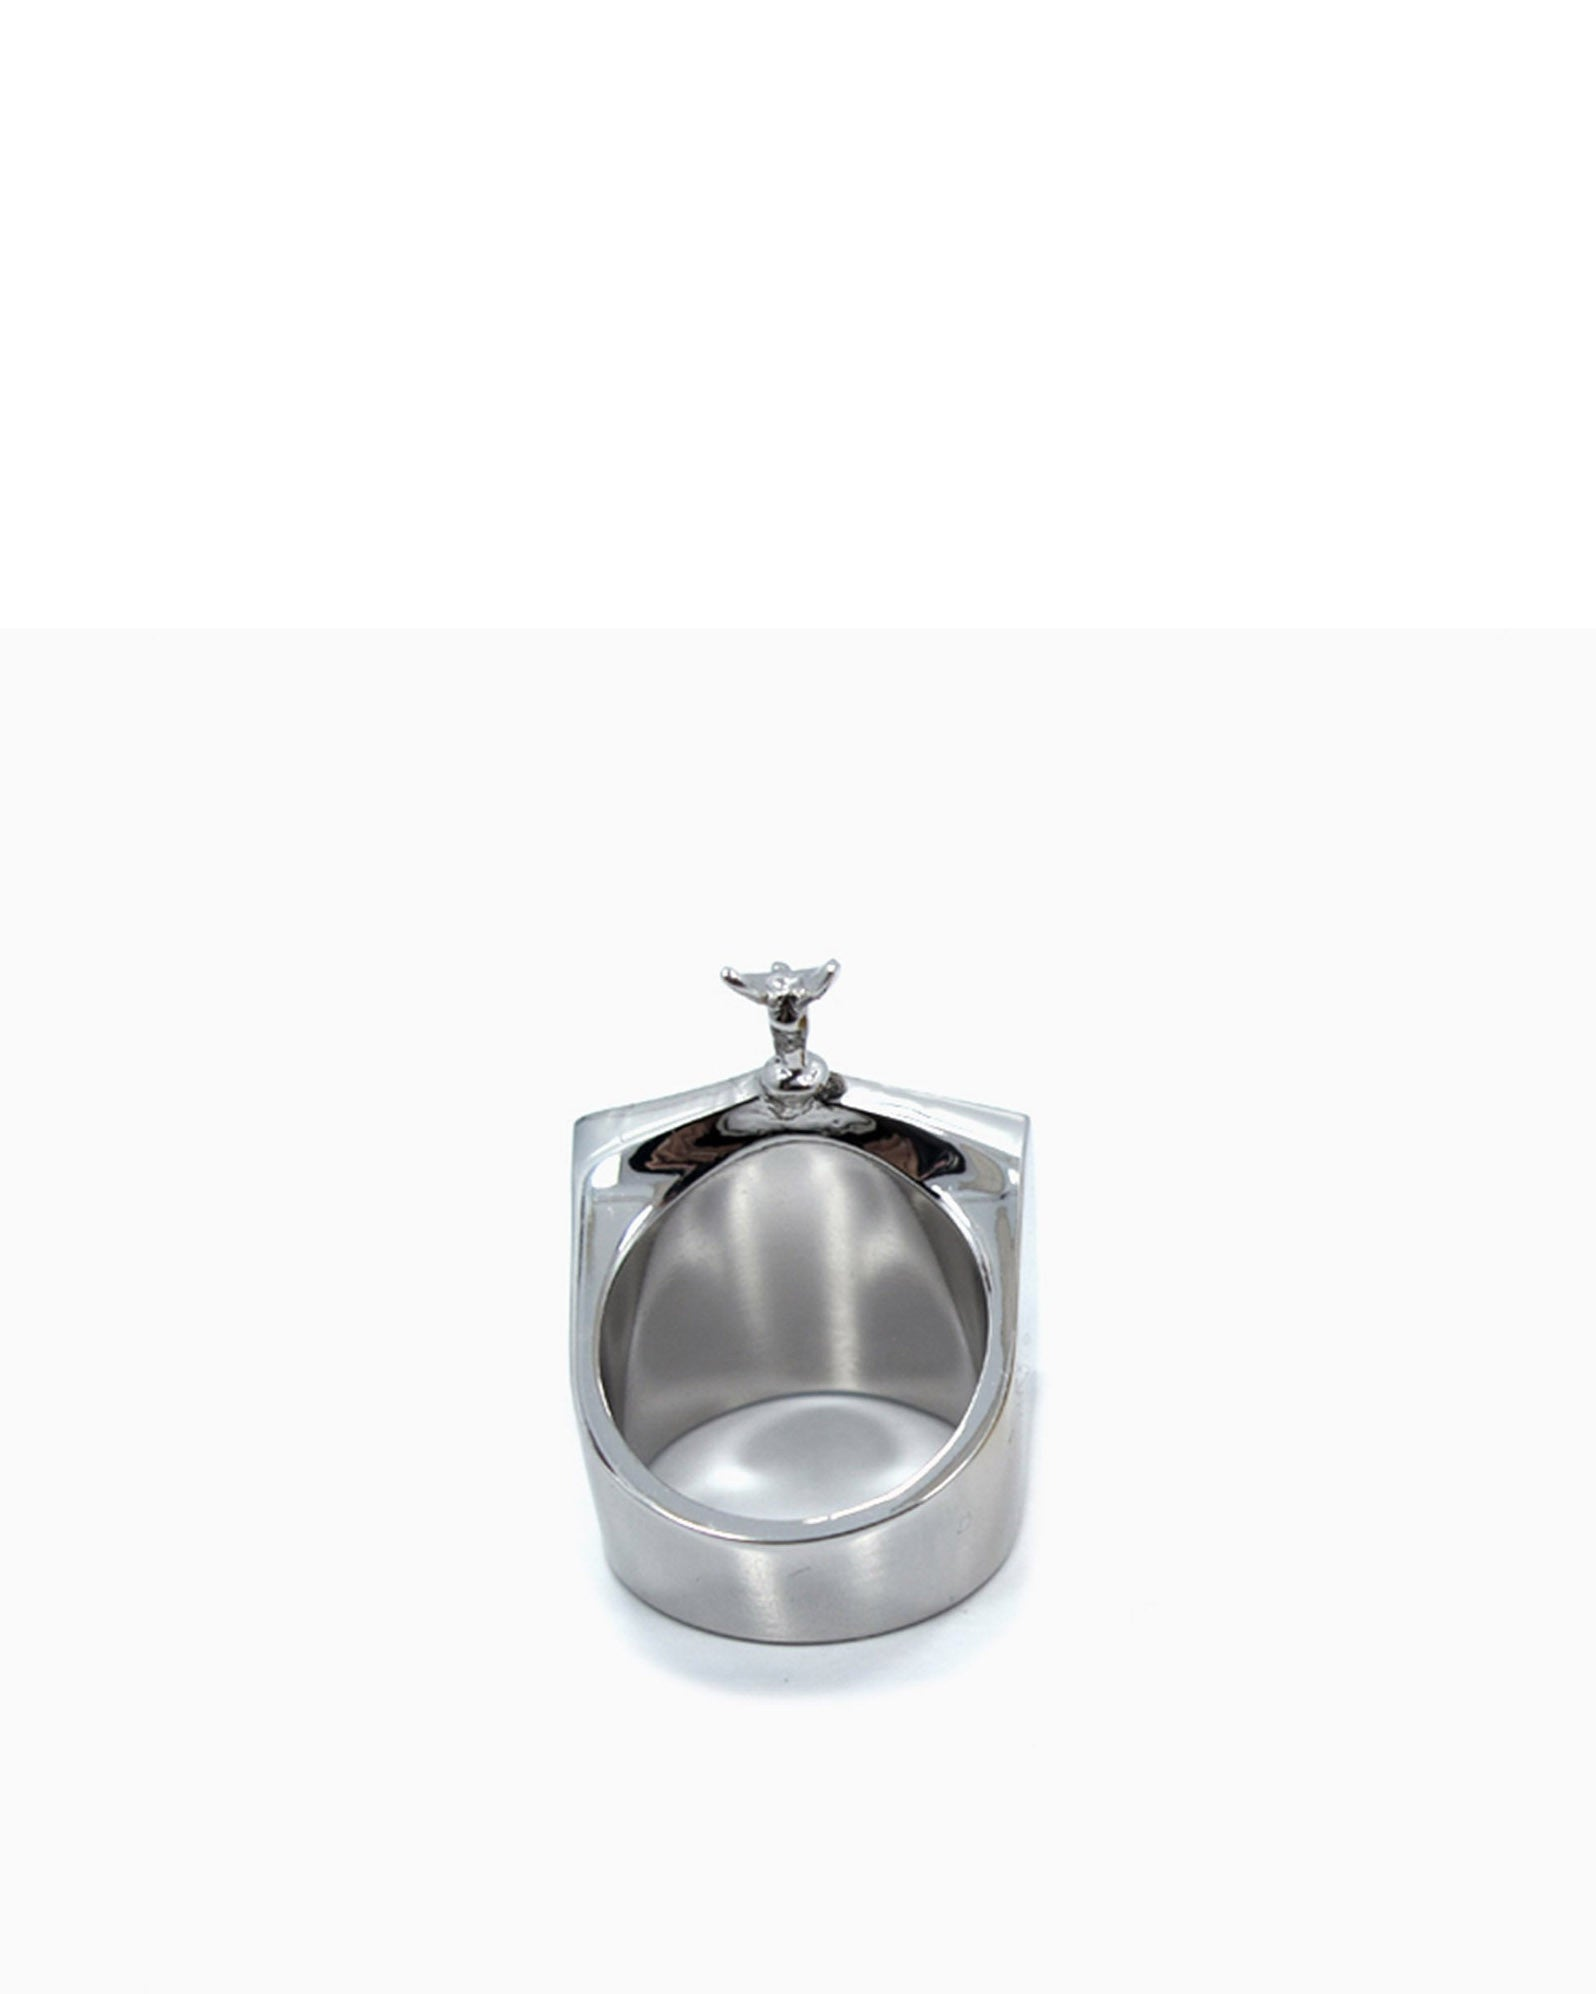 HC Grill Ring (Silver)